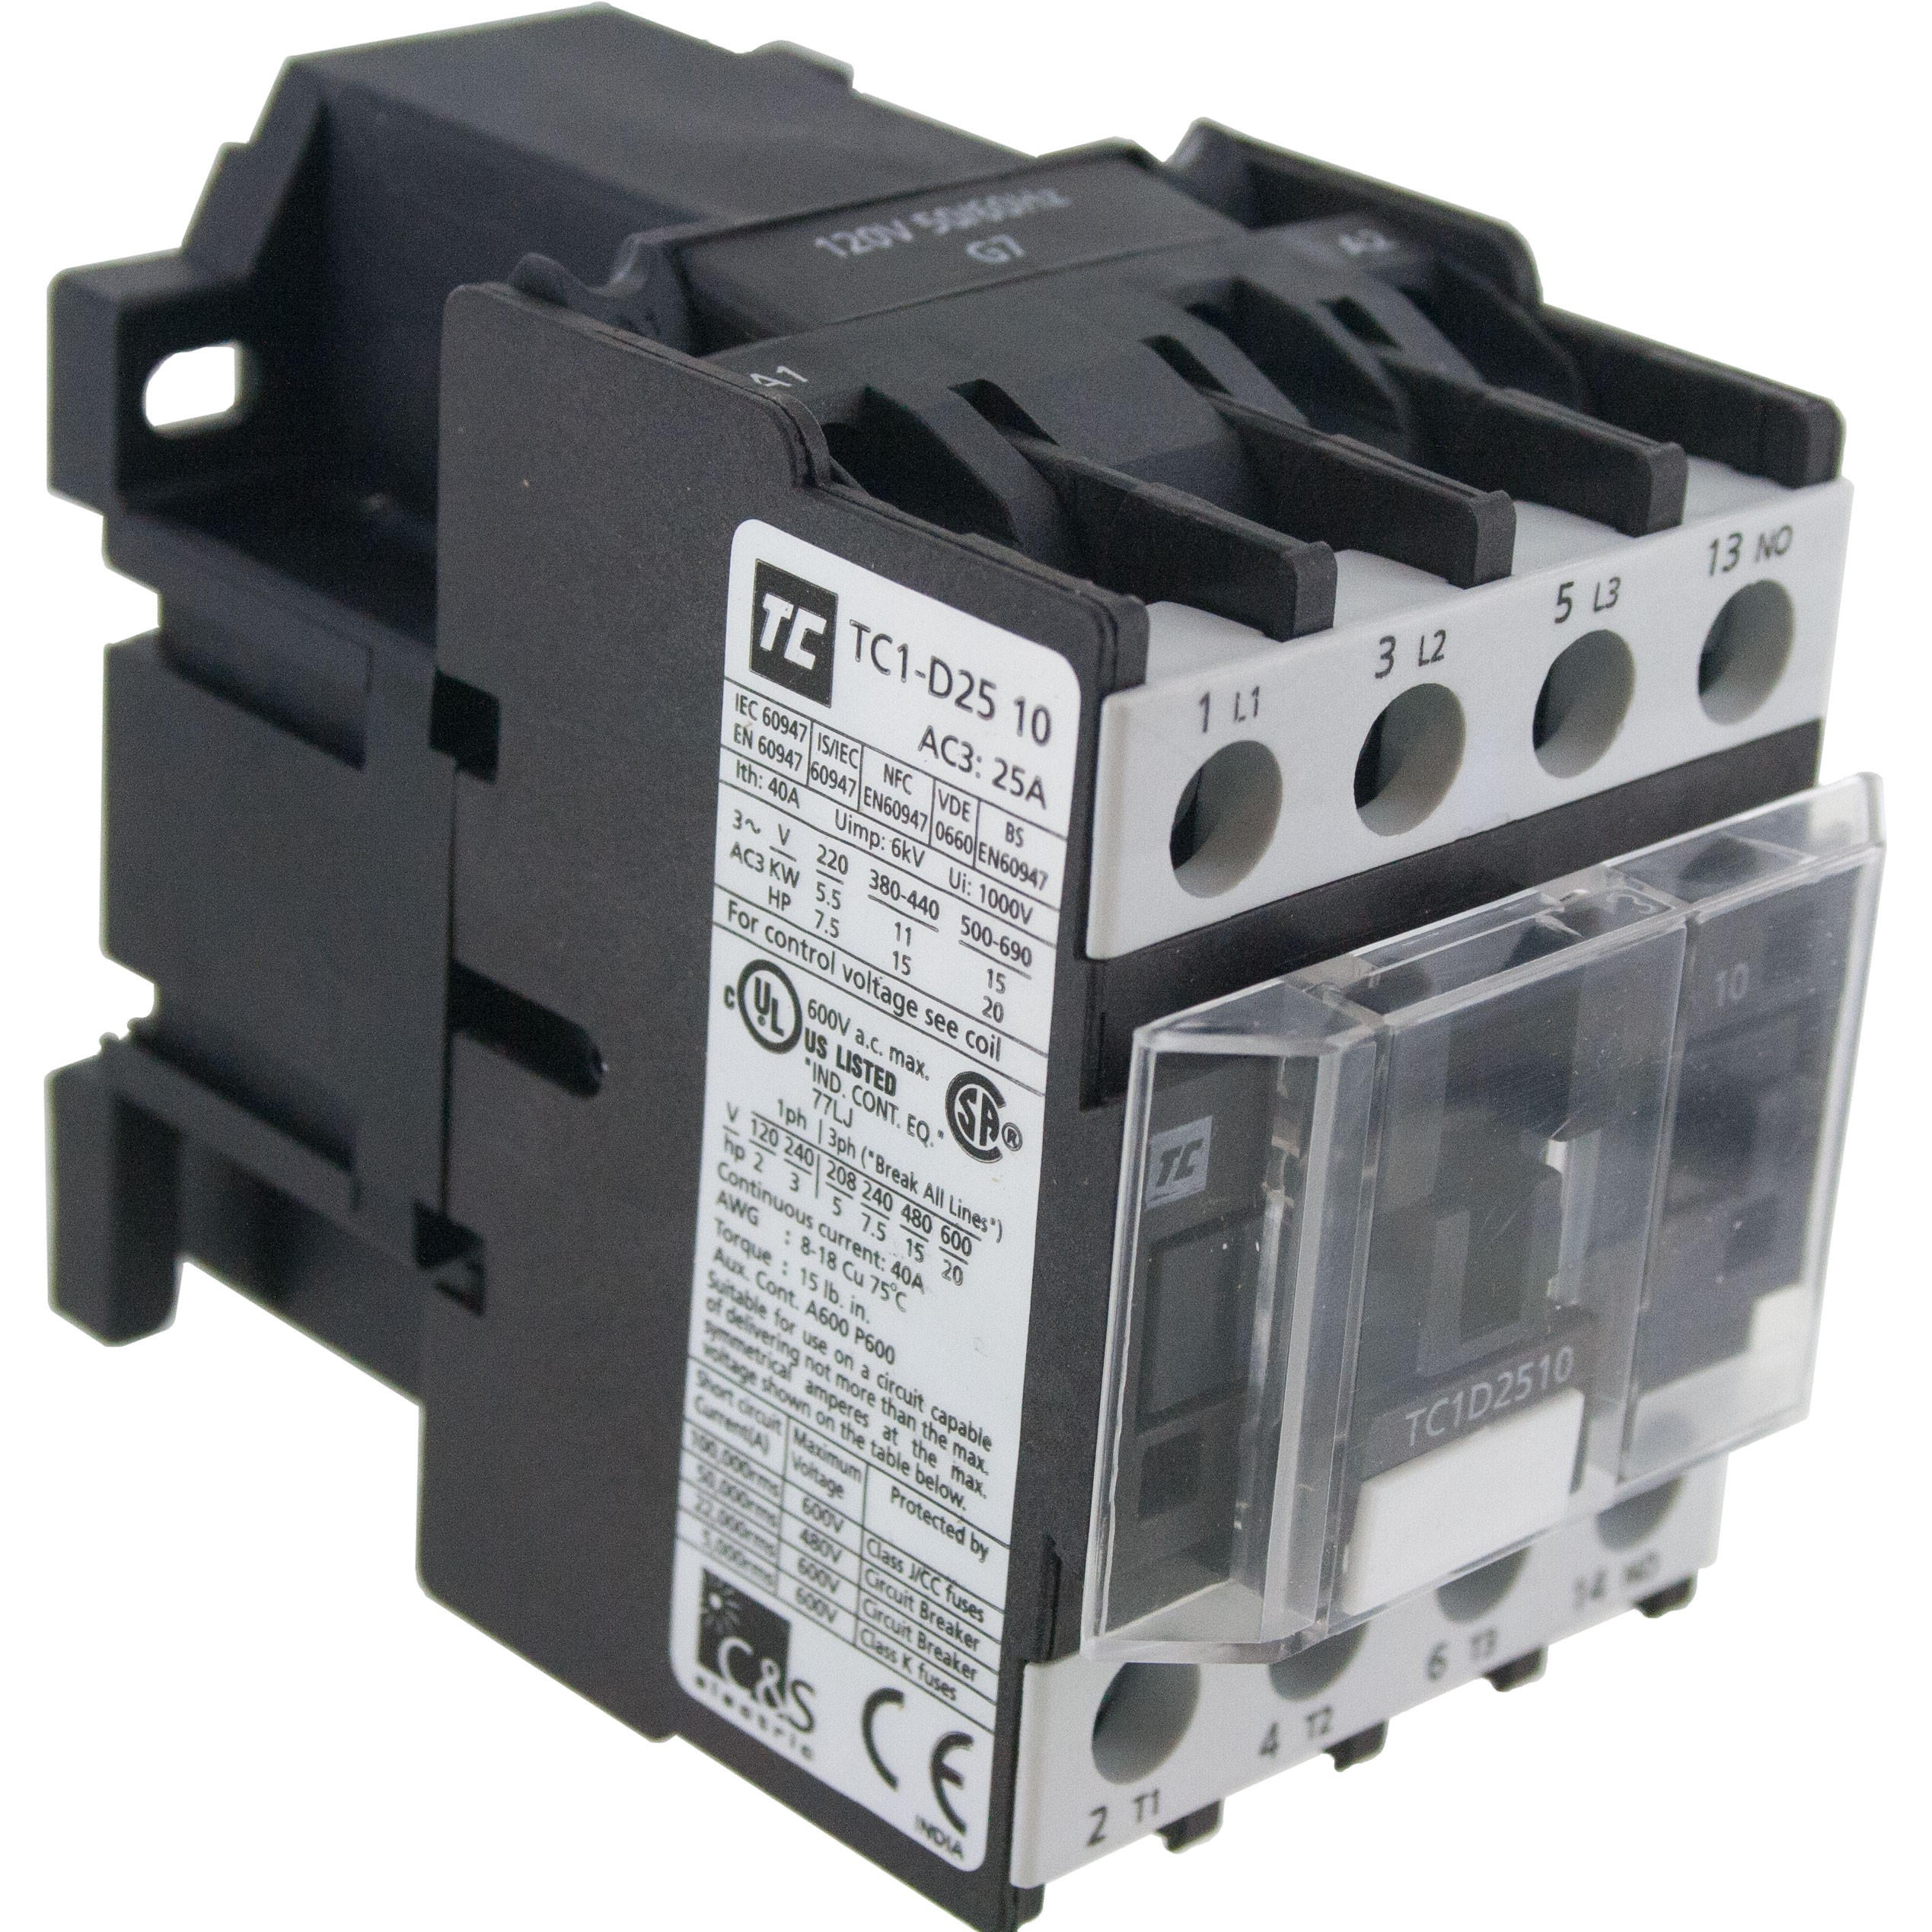 3 Pole Contactor 25 Amp 575 Volt AC Coil Angle